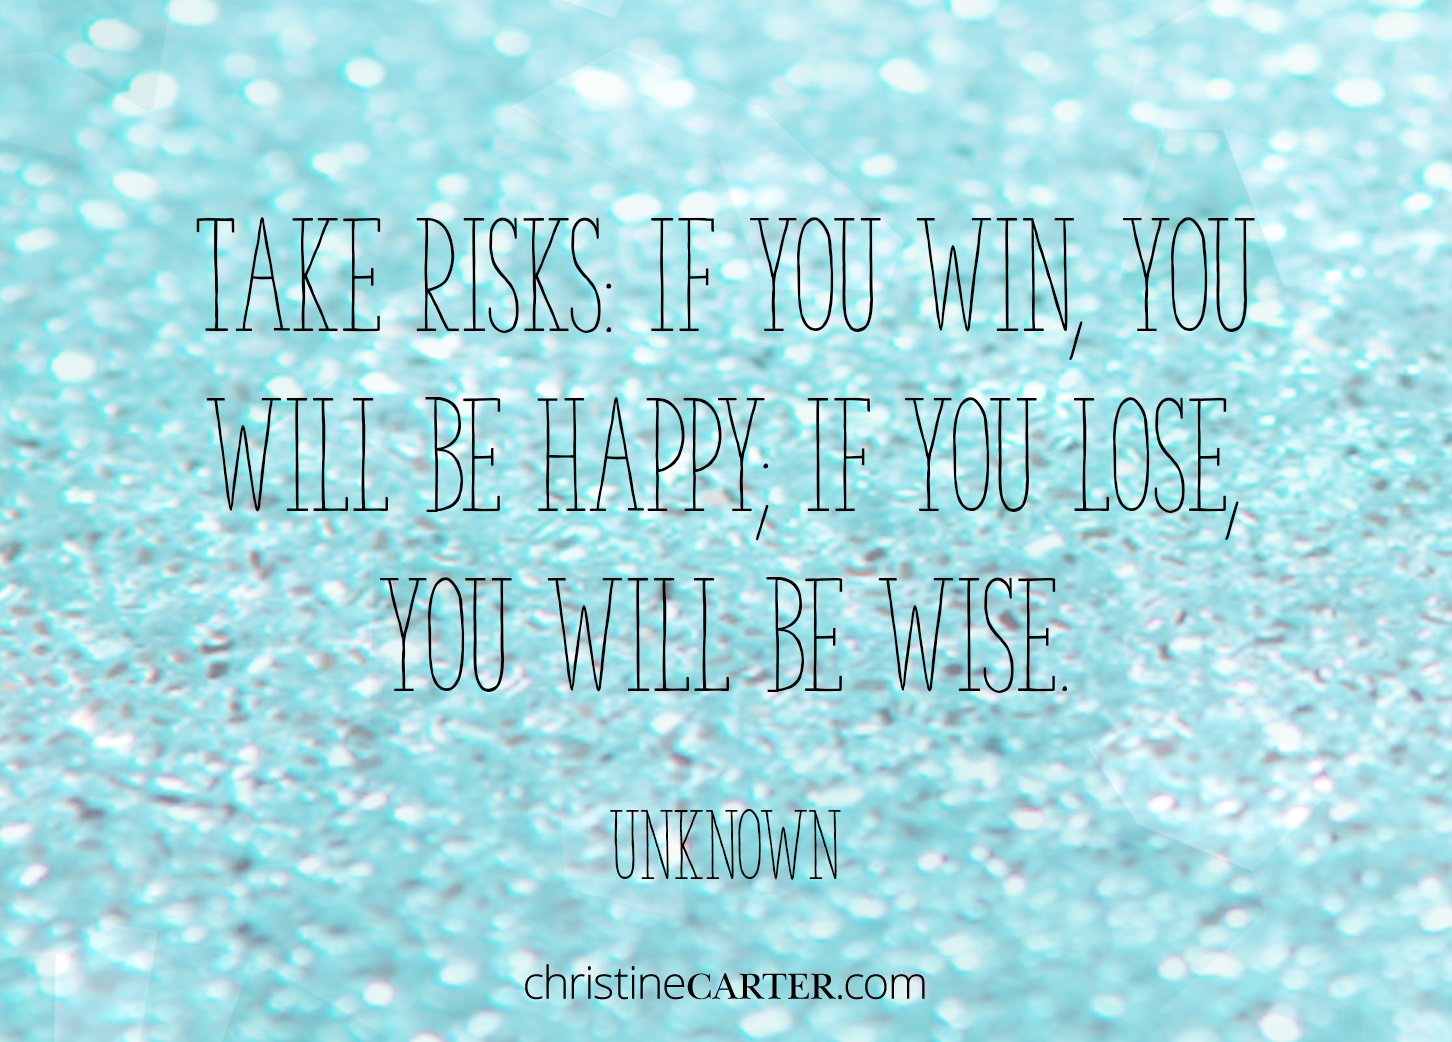 Take risks: If you win, you will be happy; if you lose, you will be wise. --Unknown